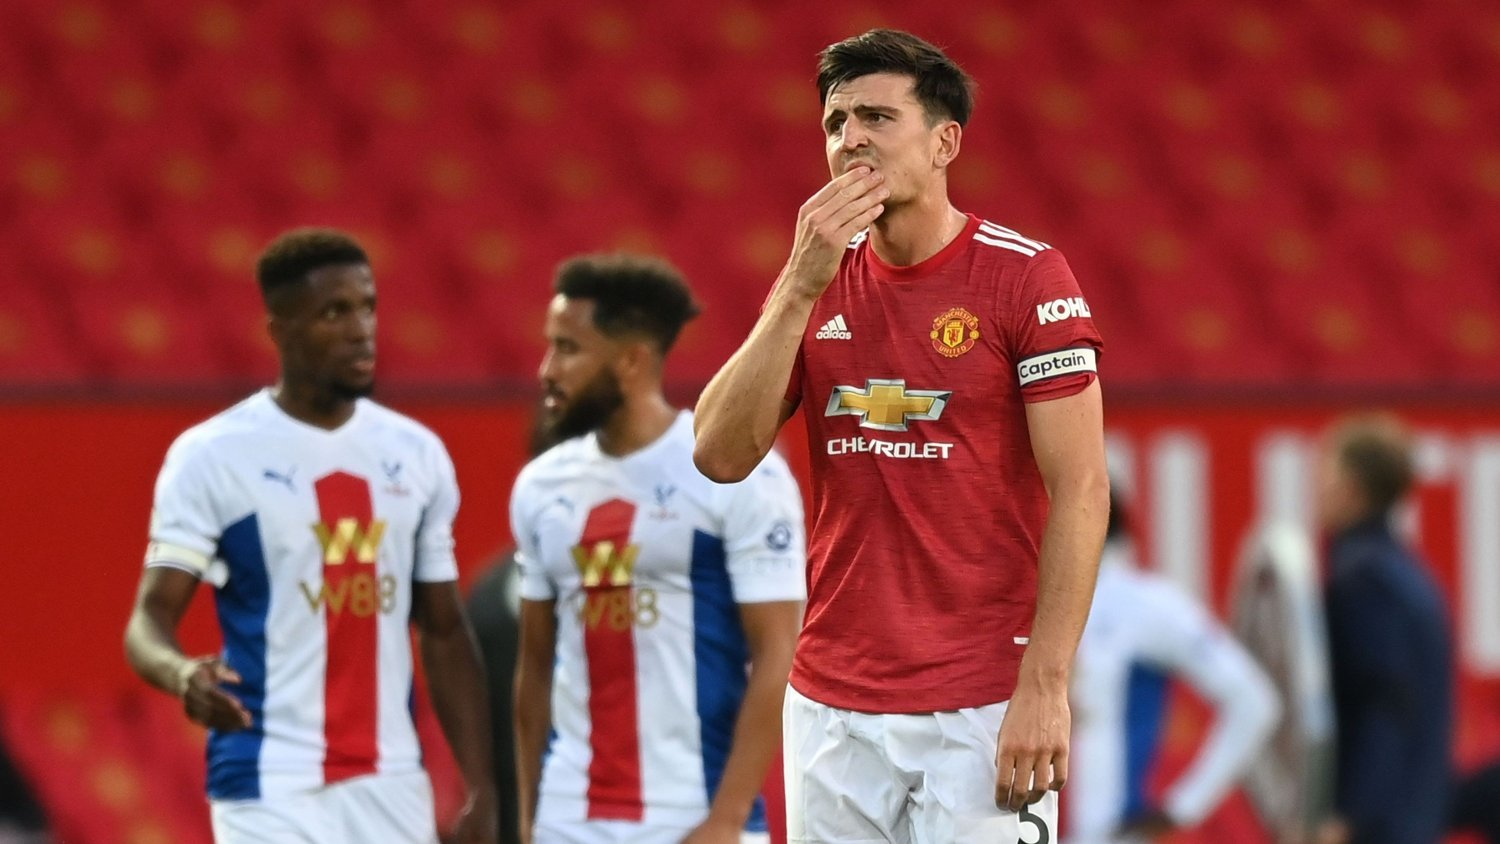 Manchester United's English defender Harry Maguire reacts after a penalty is awarded to Crystal Palace during the English Premier League football match between Manchester United and Crystal Palace at Old Trafford in Manchester, north west England, on September 19, 2020. / RESTRICTED TO EDITORIAL USE. No use with unauthorized audio, video, data, fixture lists, club/league logos or 'live' services. Online in-match use limited to 120 images. An additional 40 images may be used in extra time. No video emulation. Social media in-match use limited to 120 images. An additional 40 images may be used in extra time. No use in betting publications, games or single club/league/player publications. /